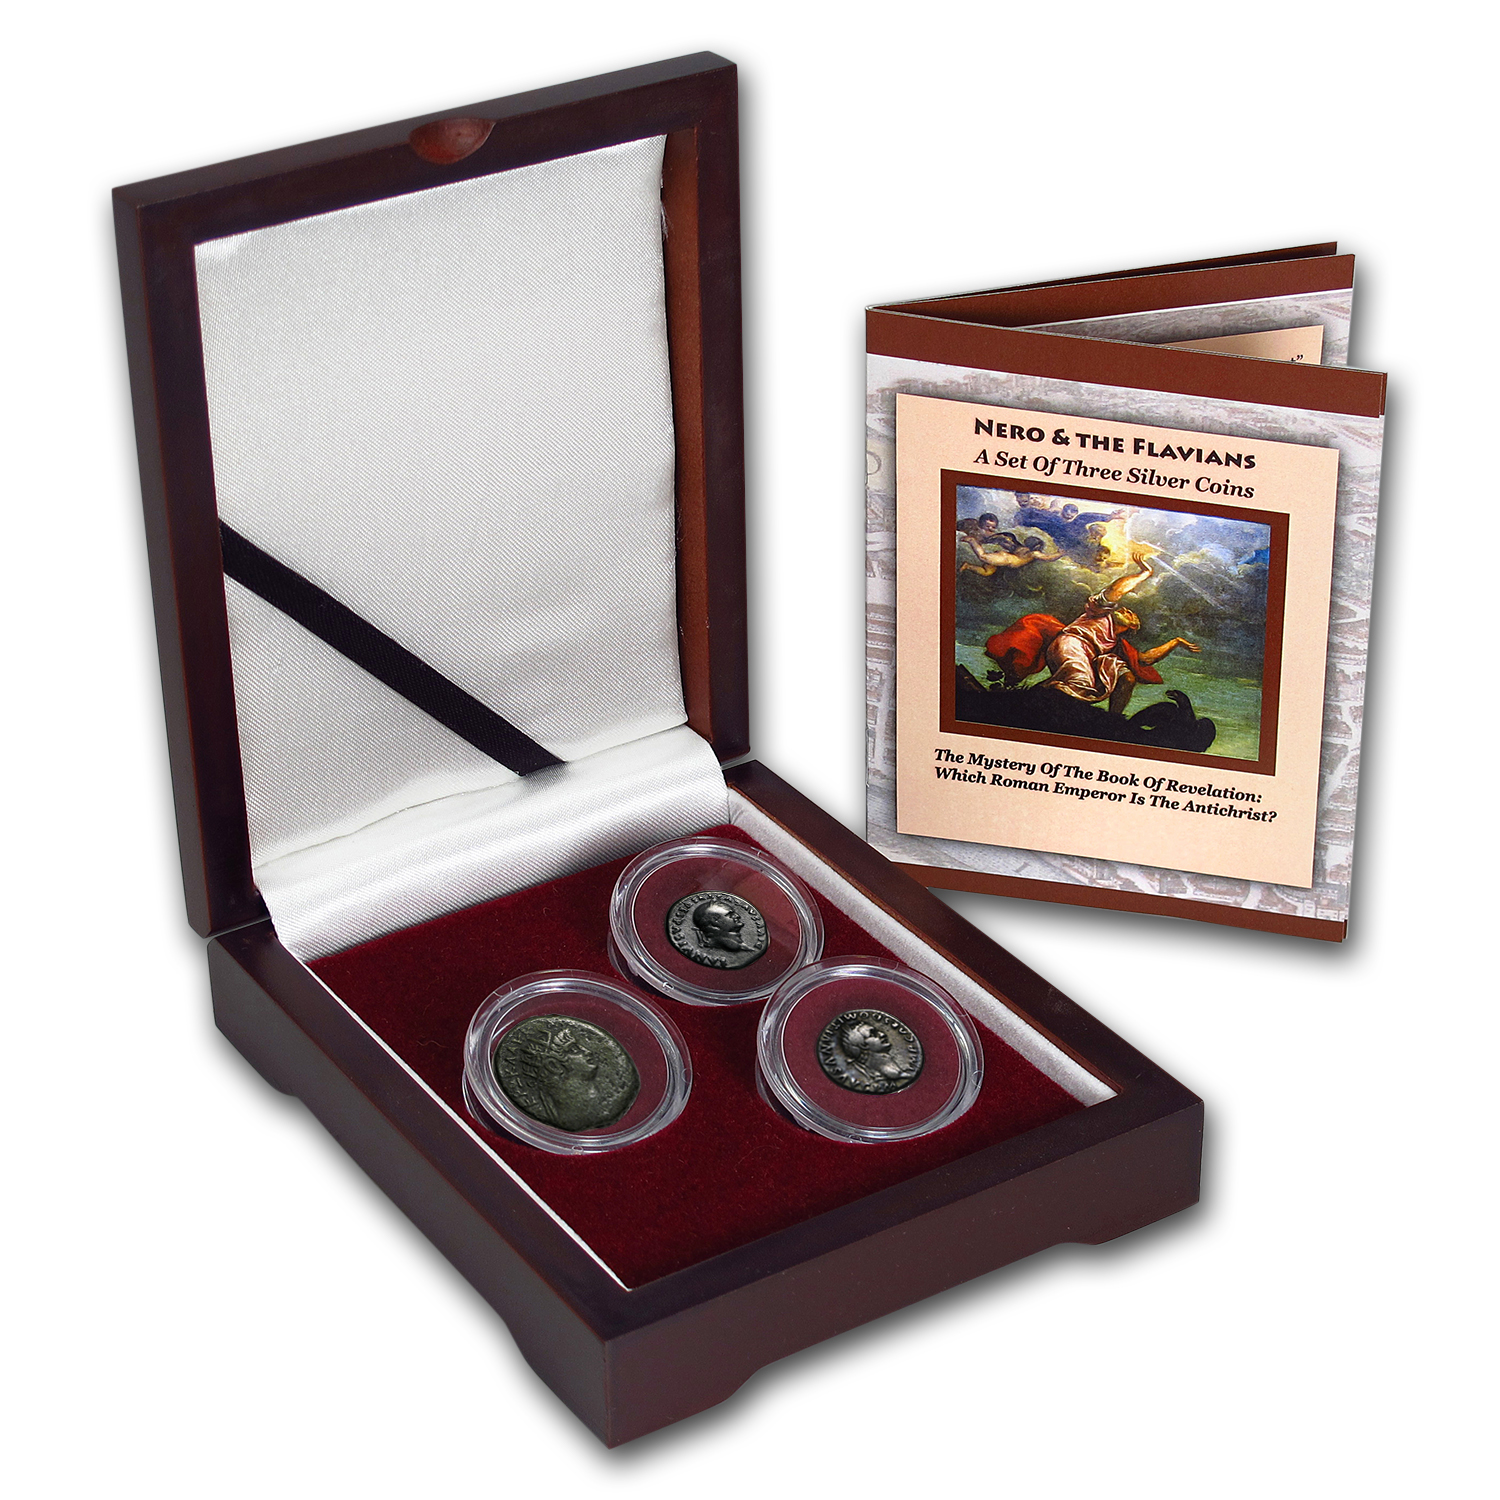 Roman Silver 3-Coin Collection Mystery of the Book of Revelation